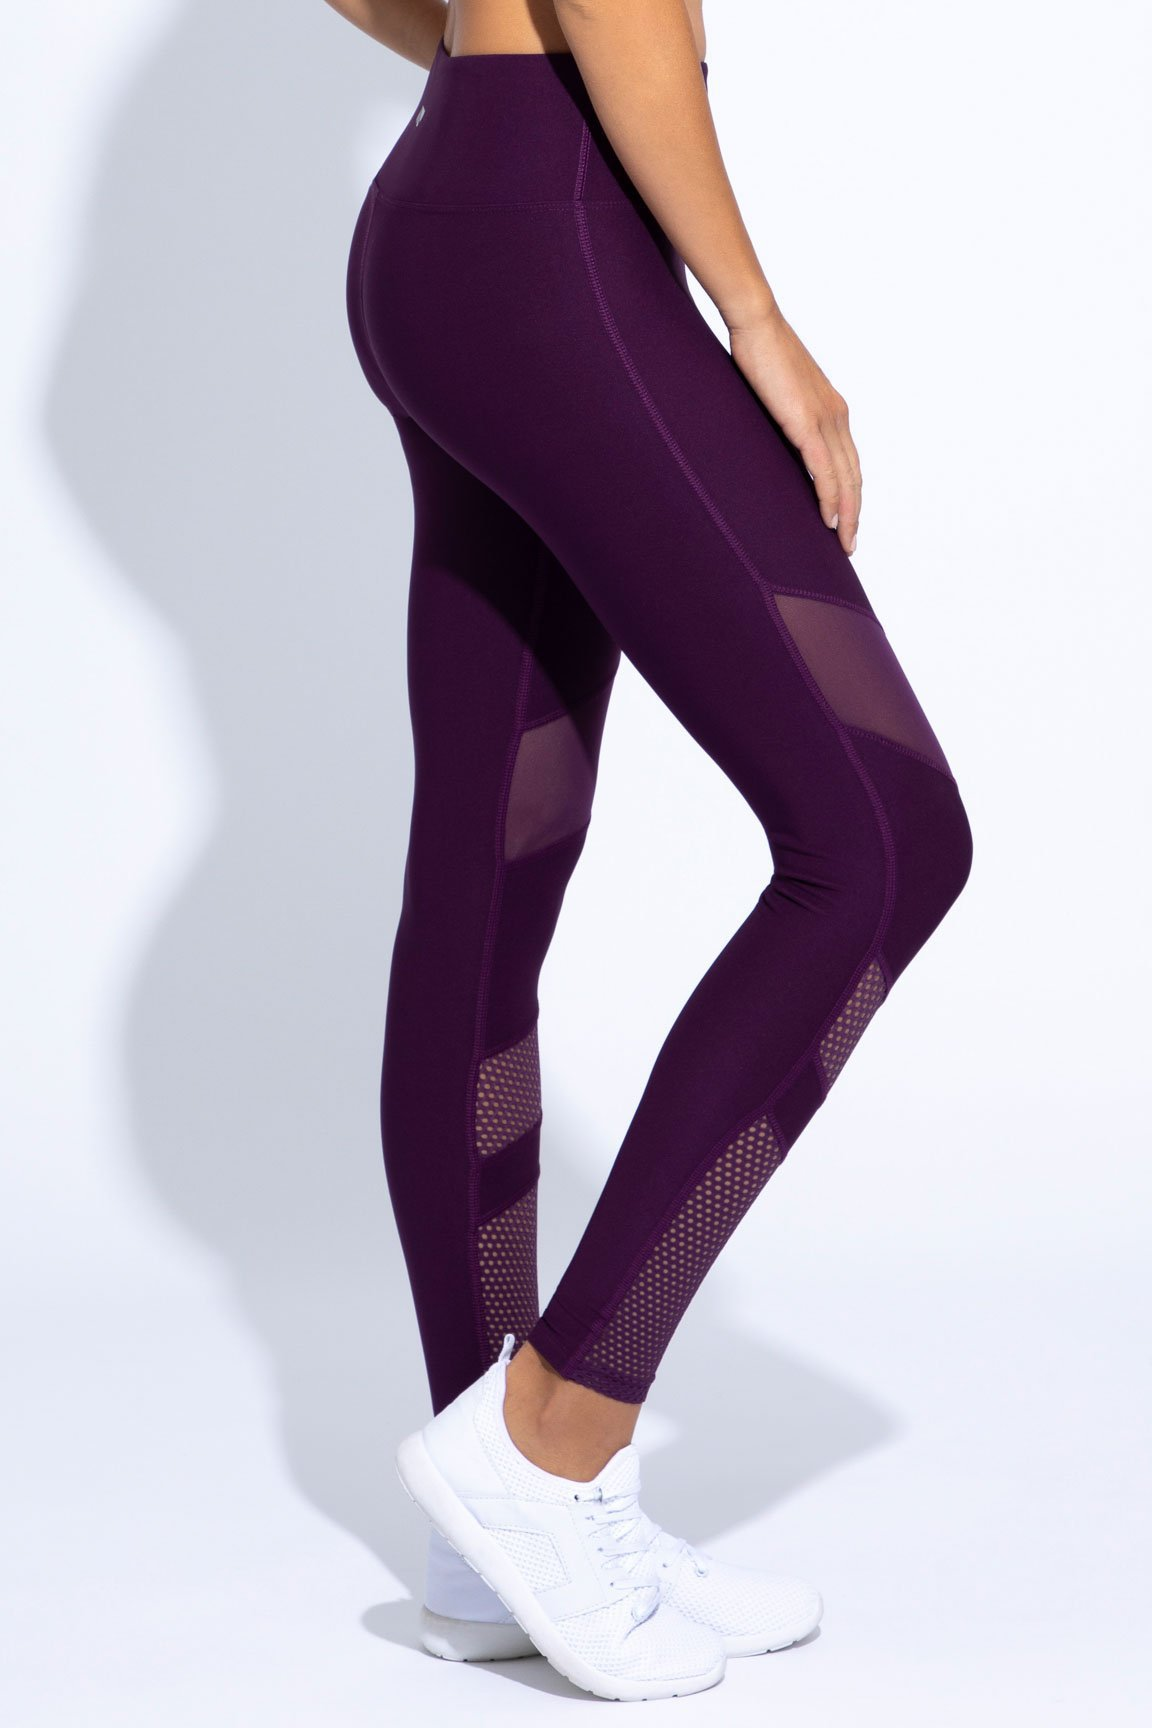 Cardio High Waist Legging (deep purple)